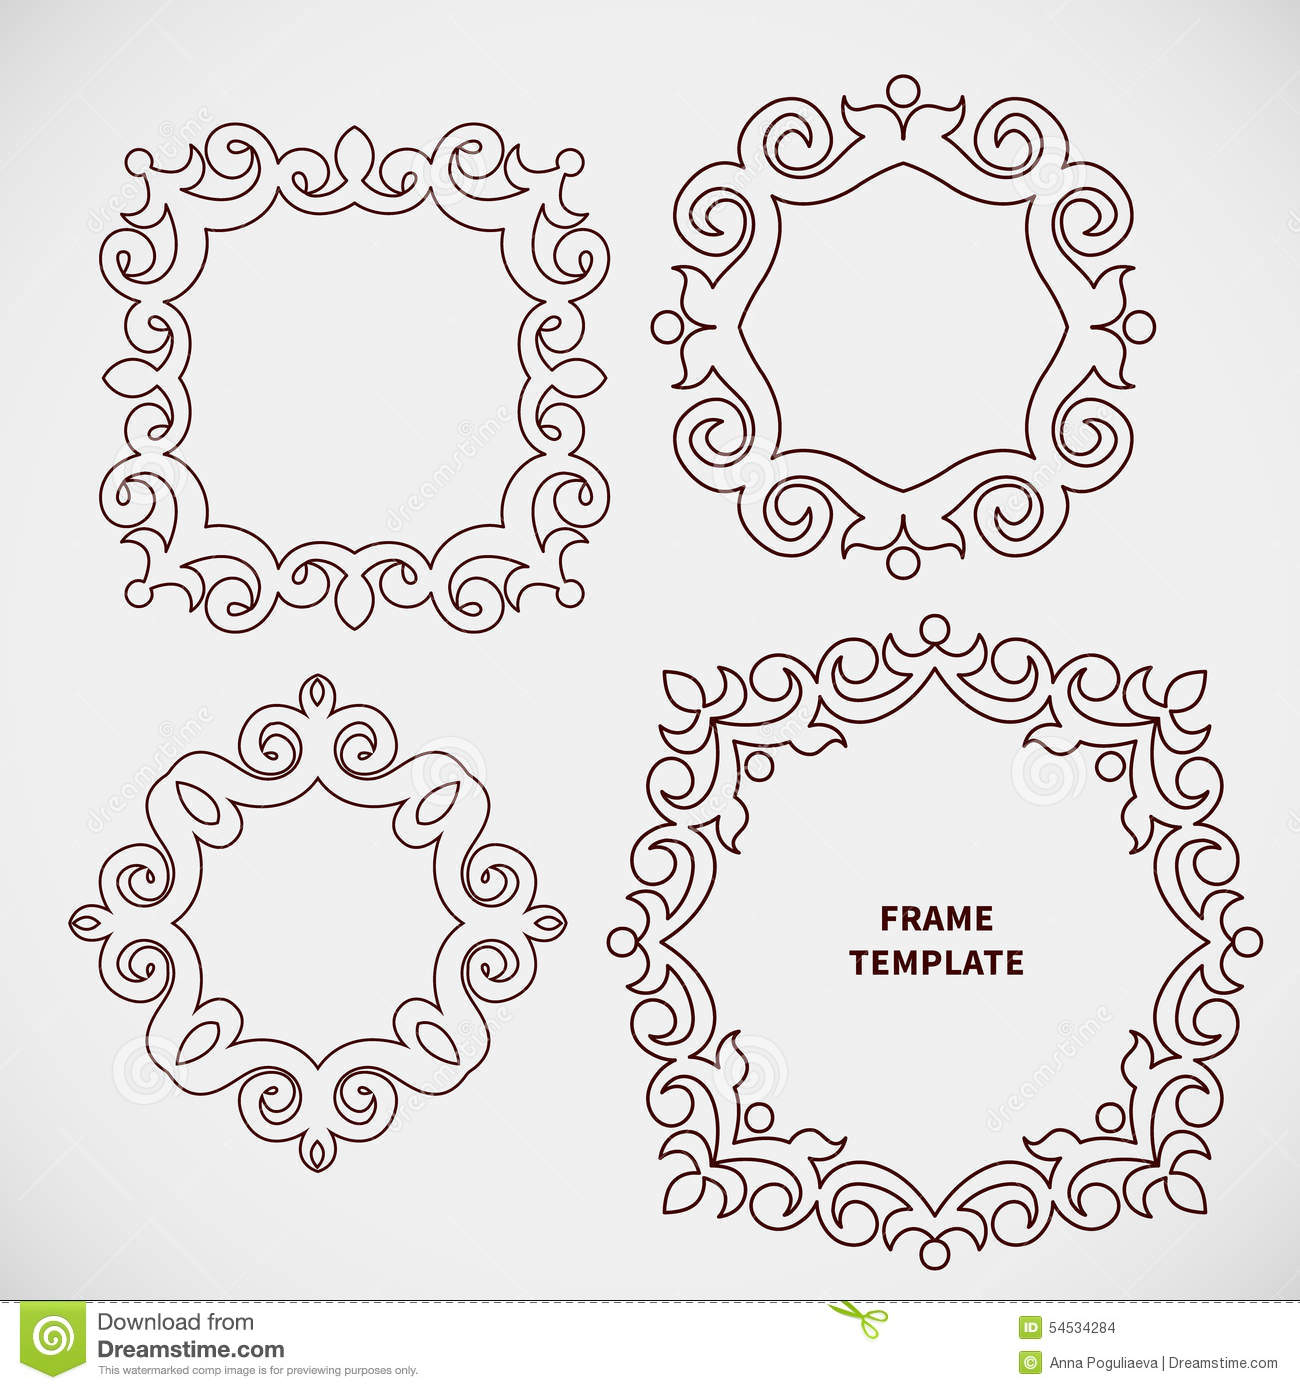 Frame Design Line Art : Vector set of decorative line art frame for design stock